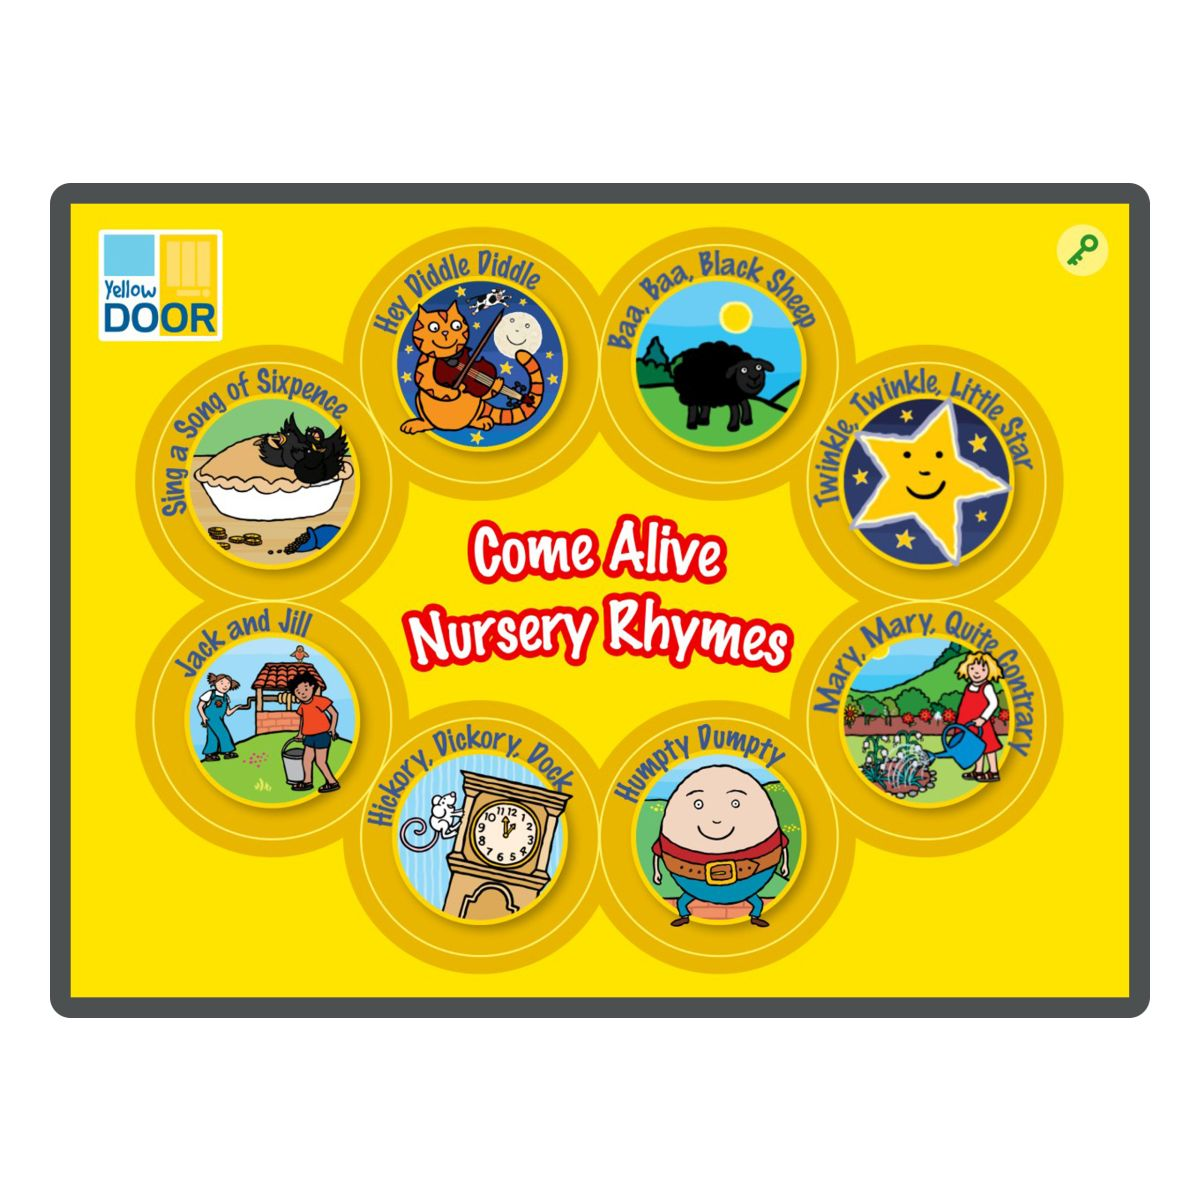 Come Alive Nursery Rhyme App - animated stories and games